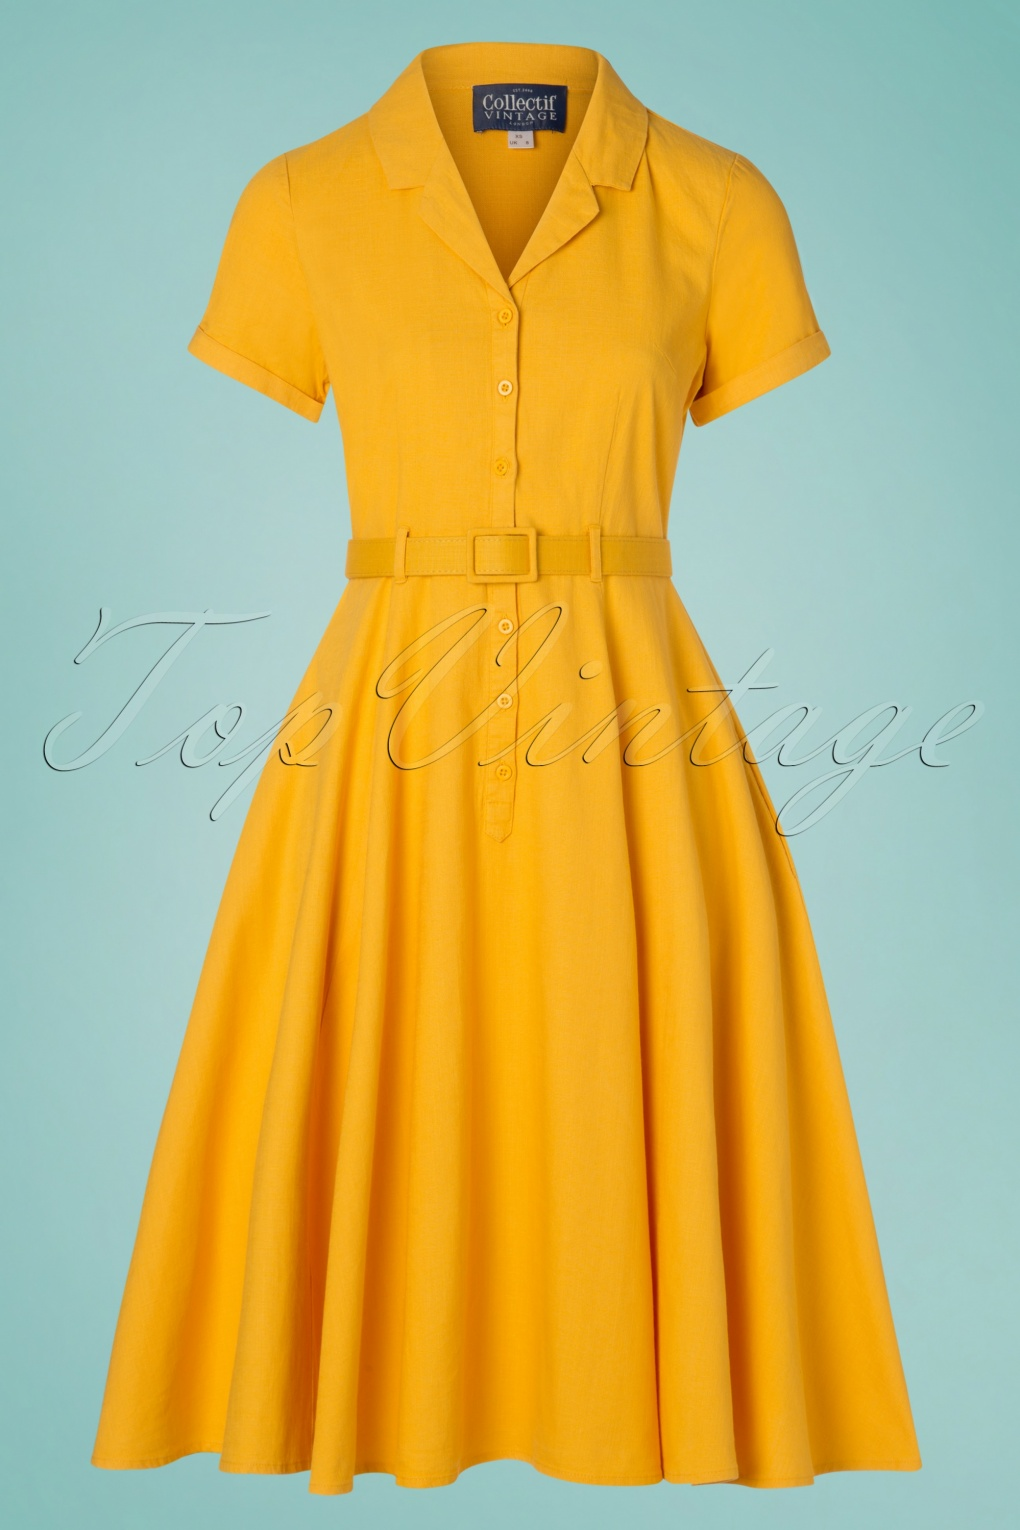 1960s Style Dresses, Clothing, Shoes UK 50s Caterina Swing Dress in Mustard Yellow £70.40 AT vintagedancer.com